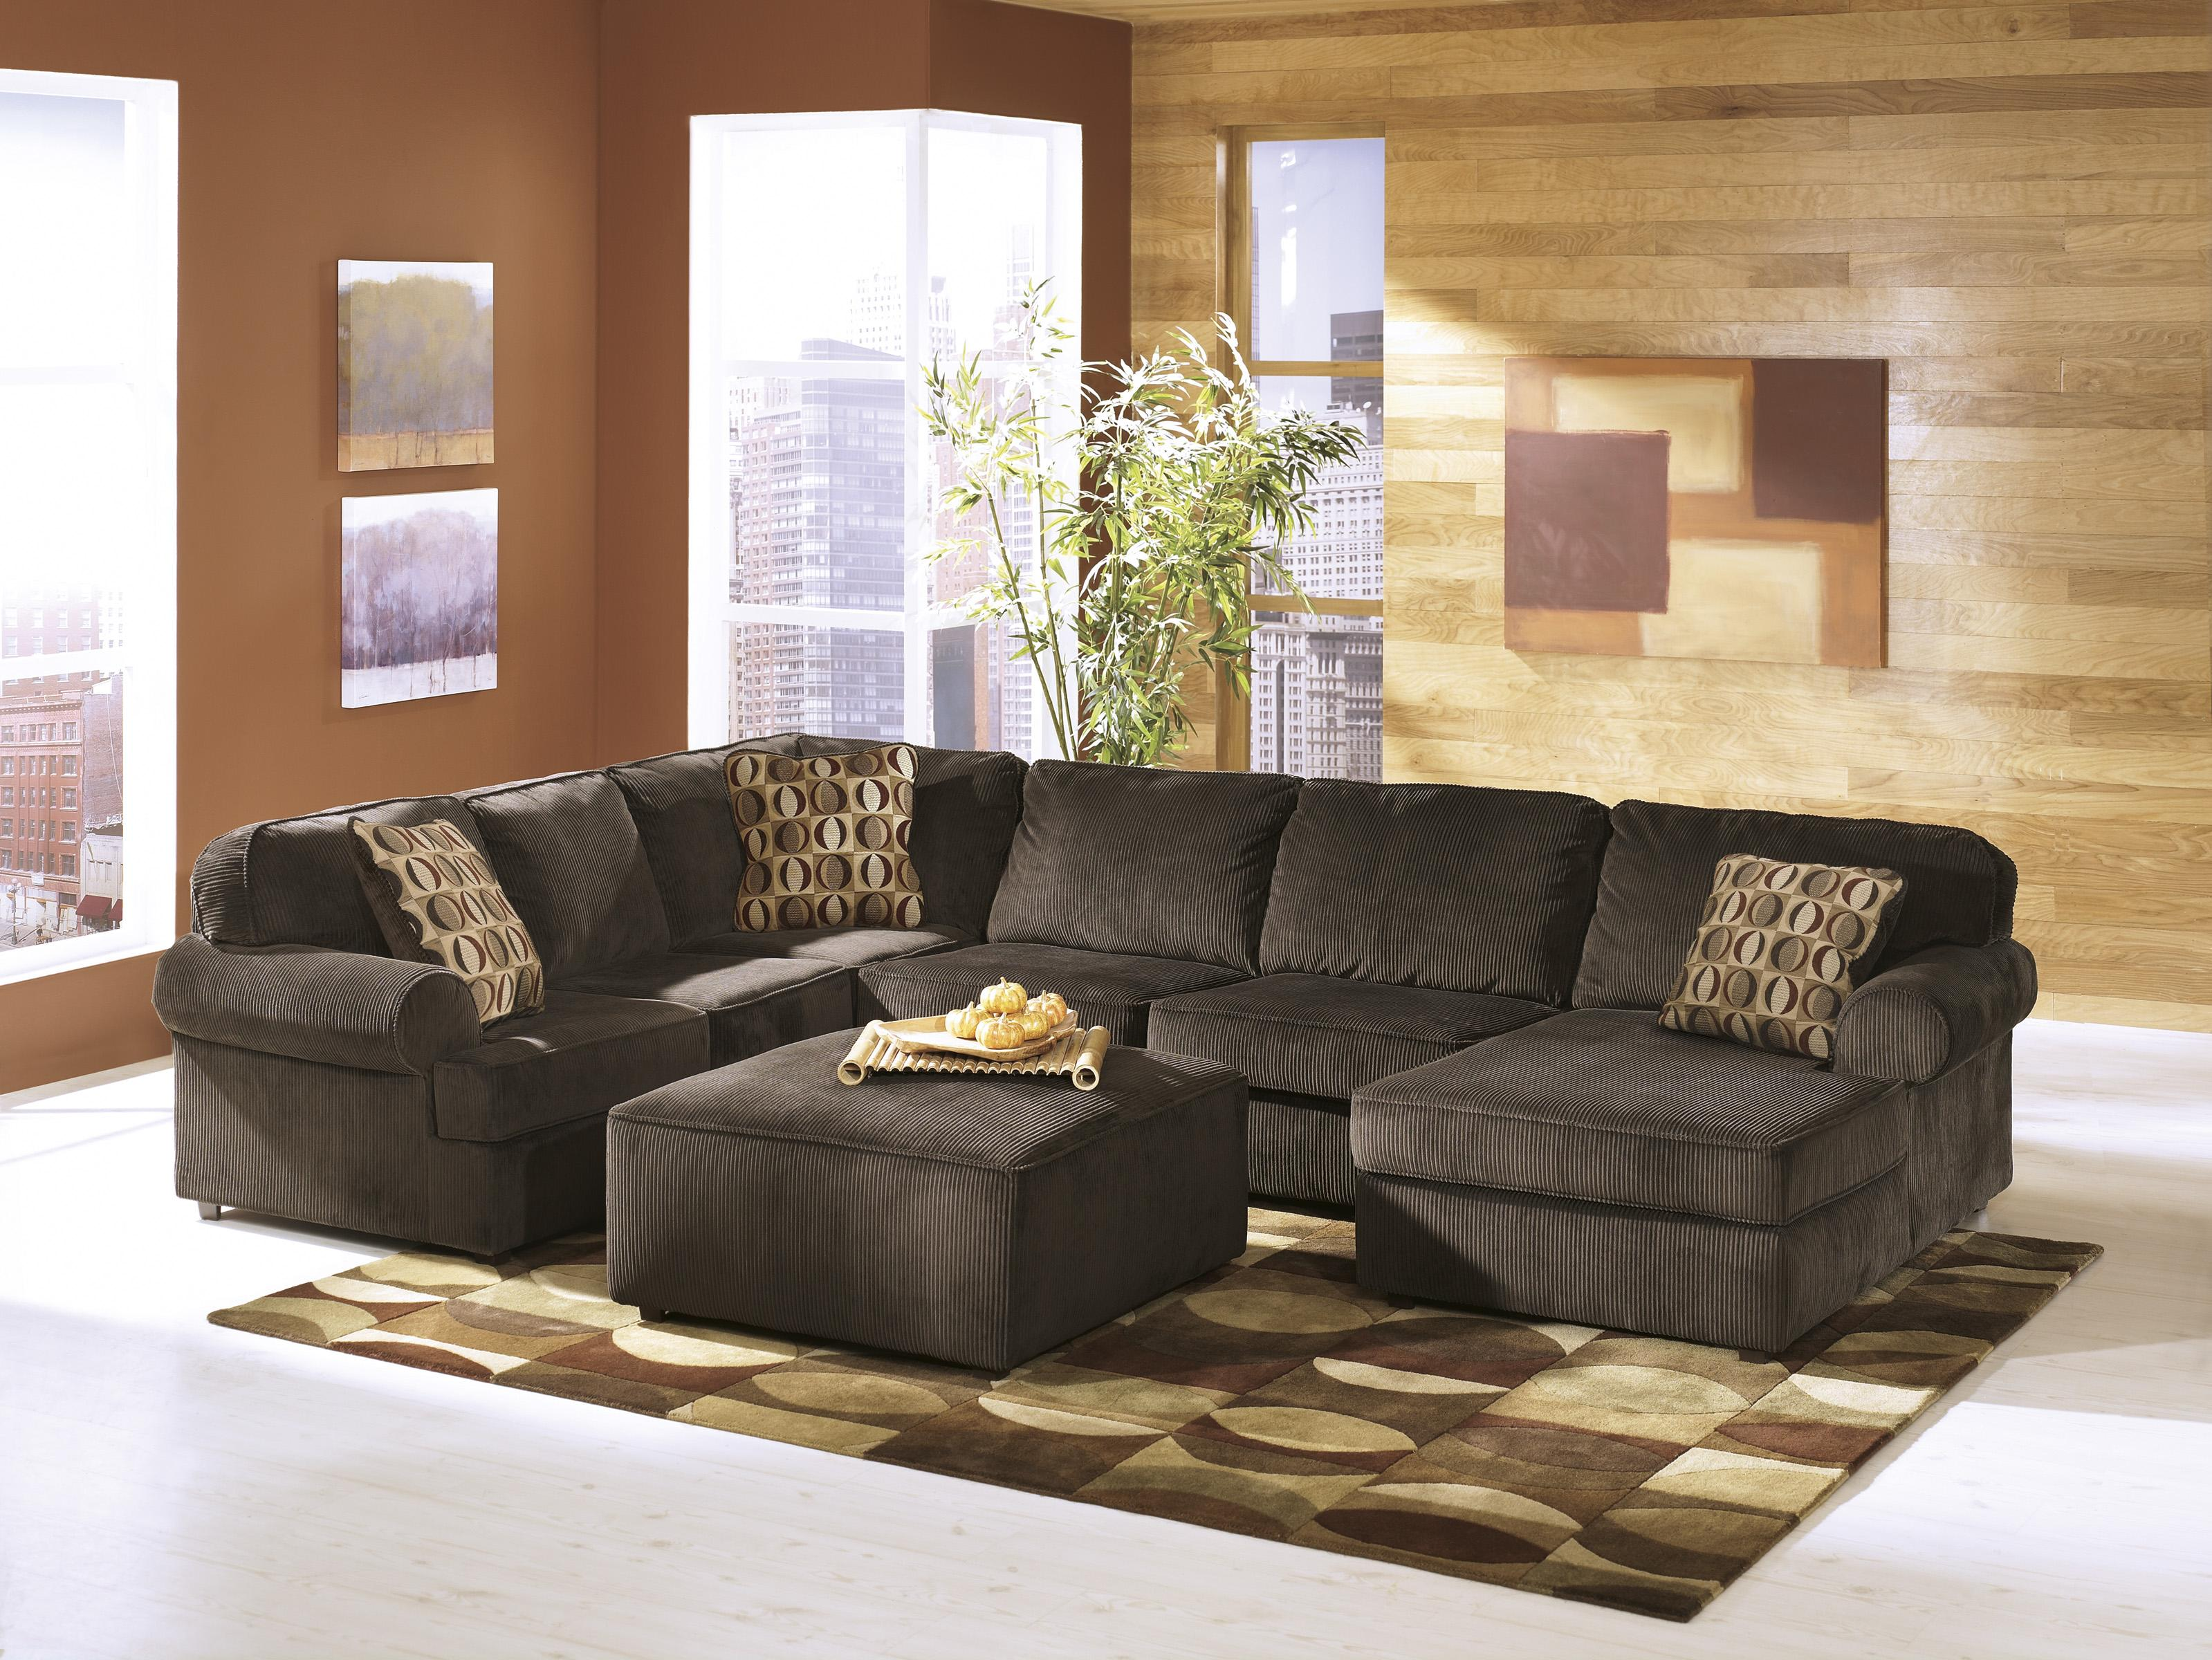 Ashley Furniture Vista - Chocolate Stationary Living Room Group - Item Number: 68404 Living Room Group 2